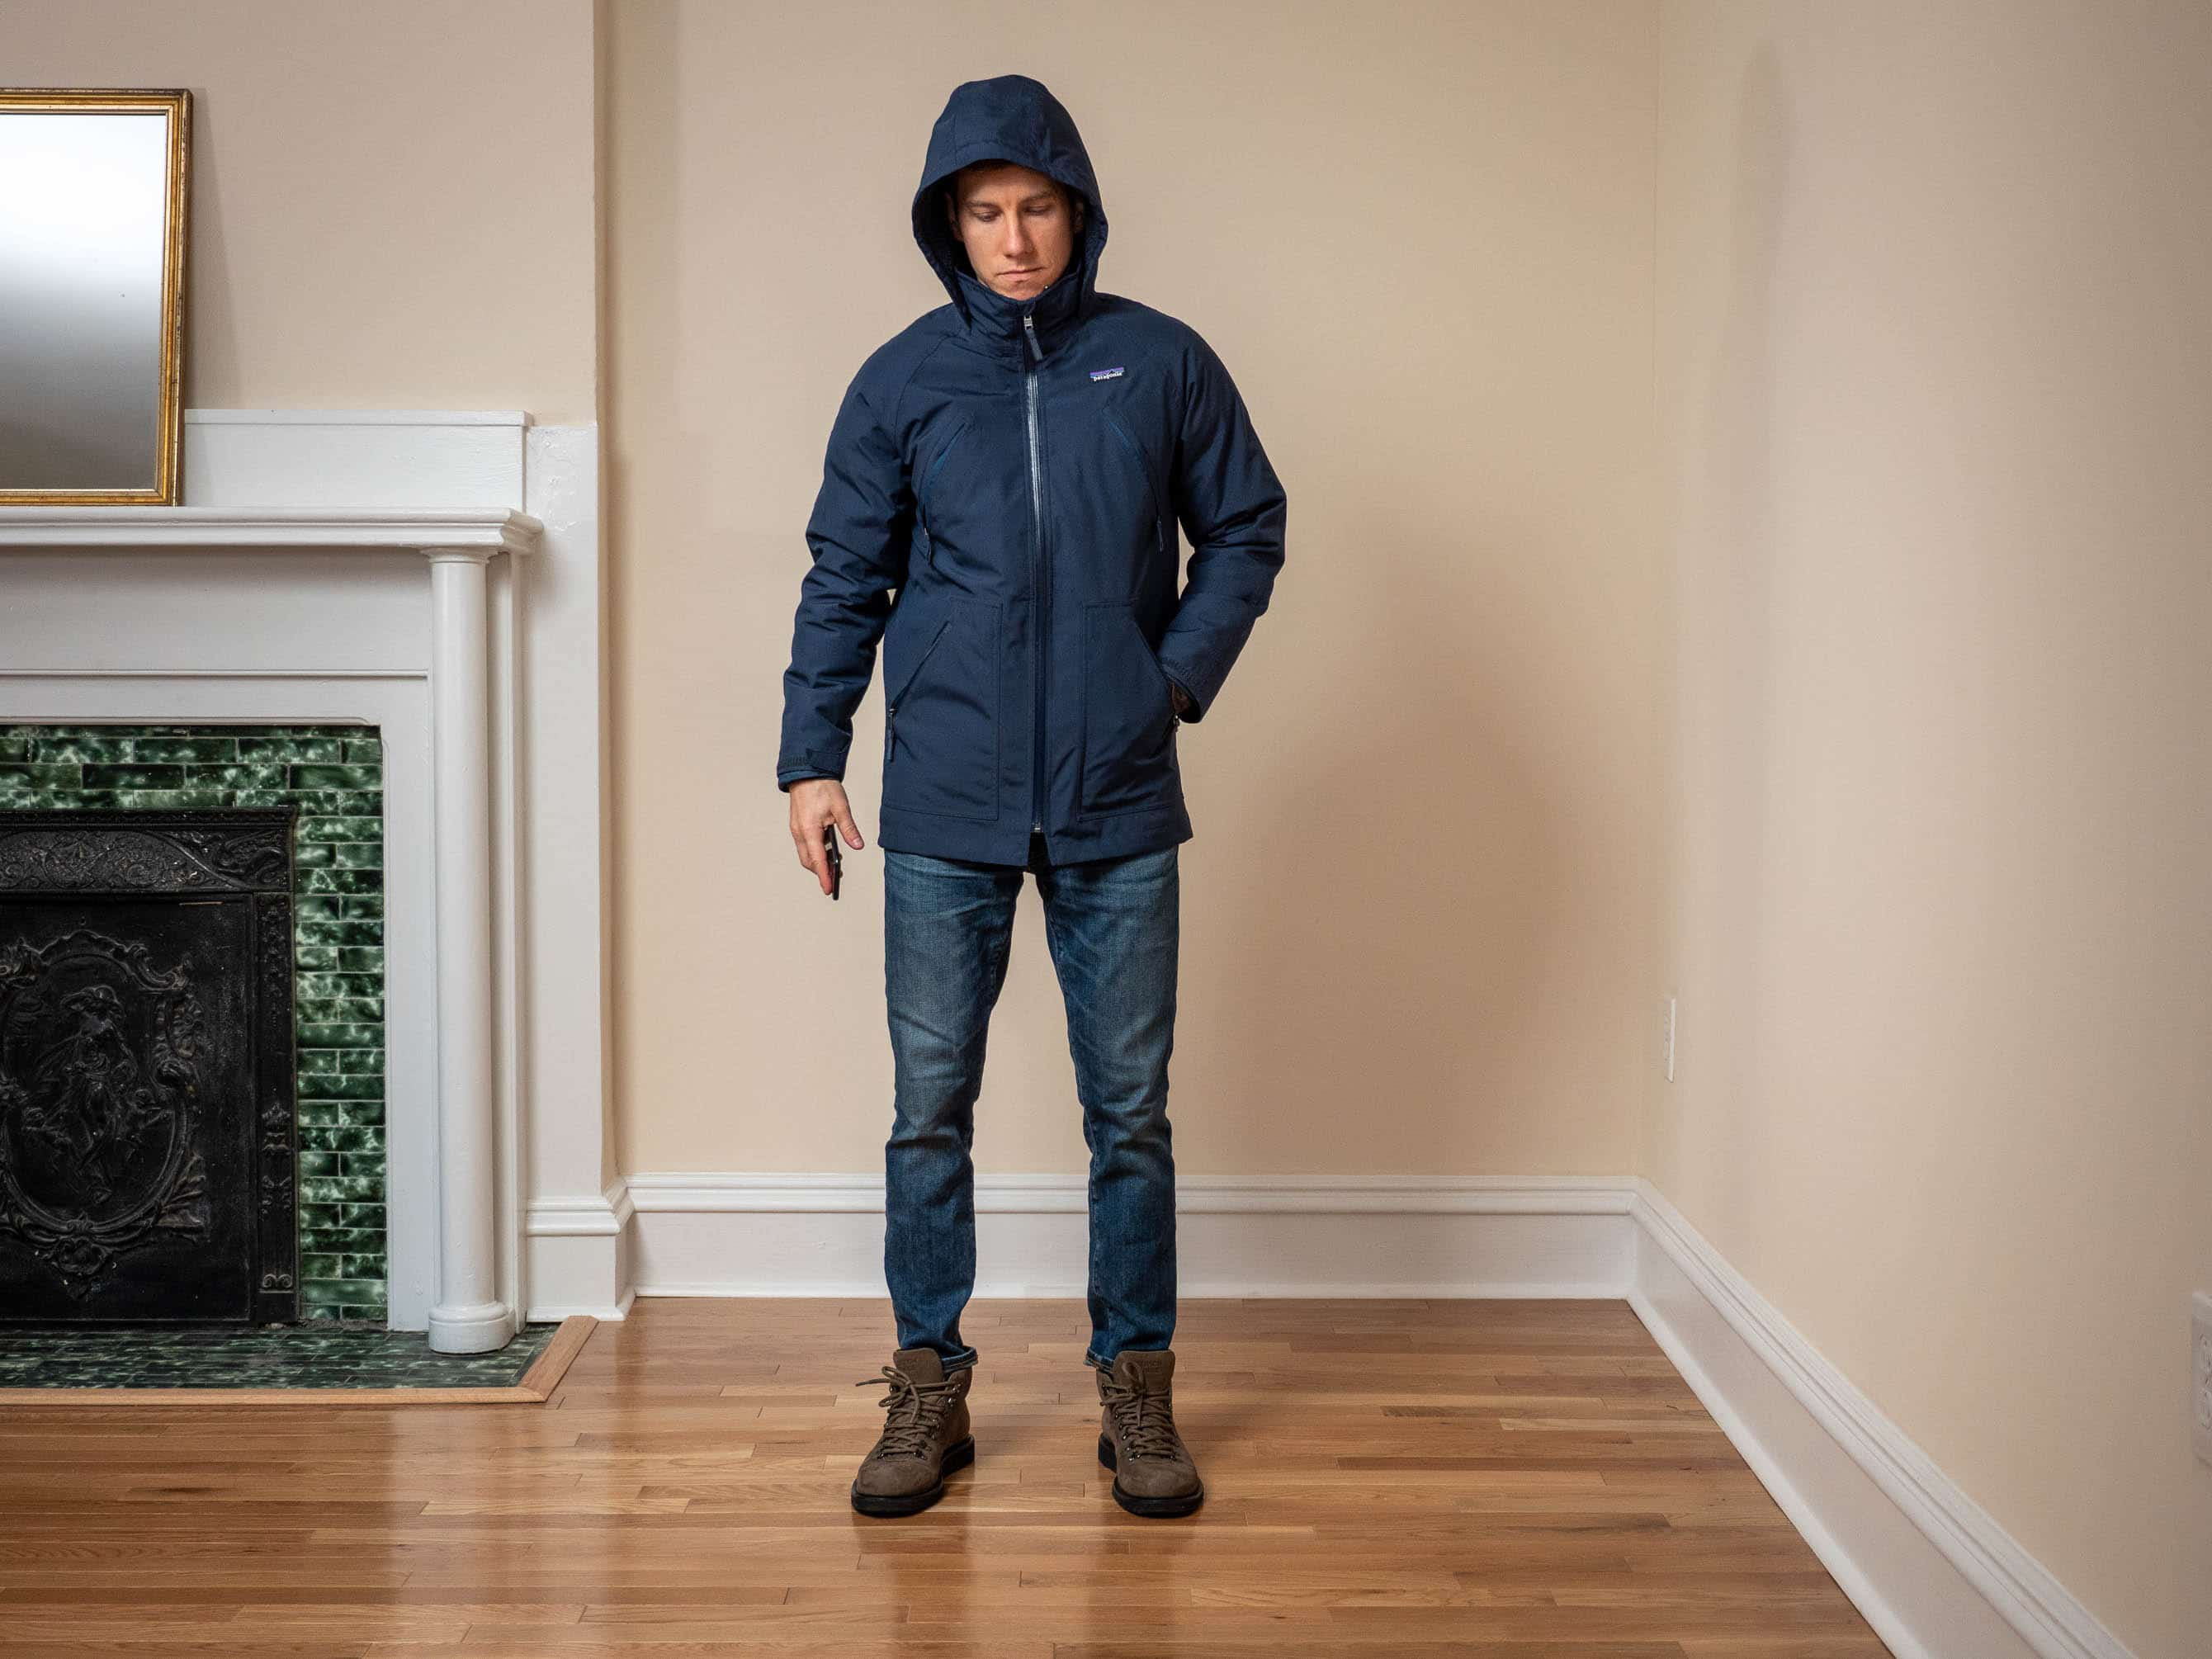 Patagonia Tres Boys 3-in-1 Parka hood up front